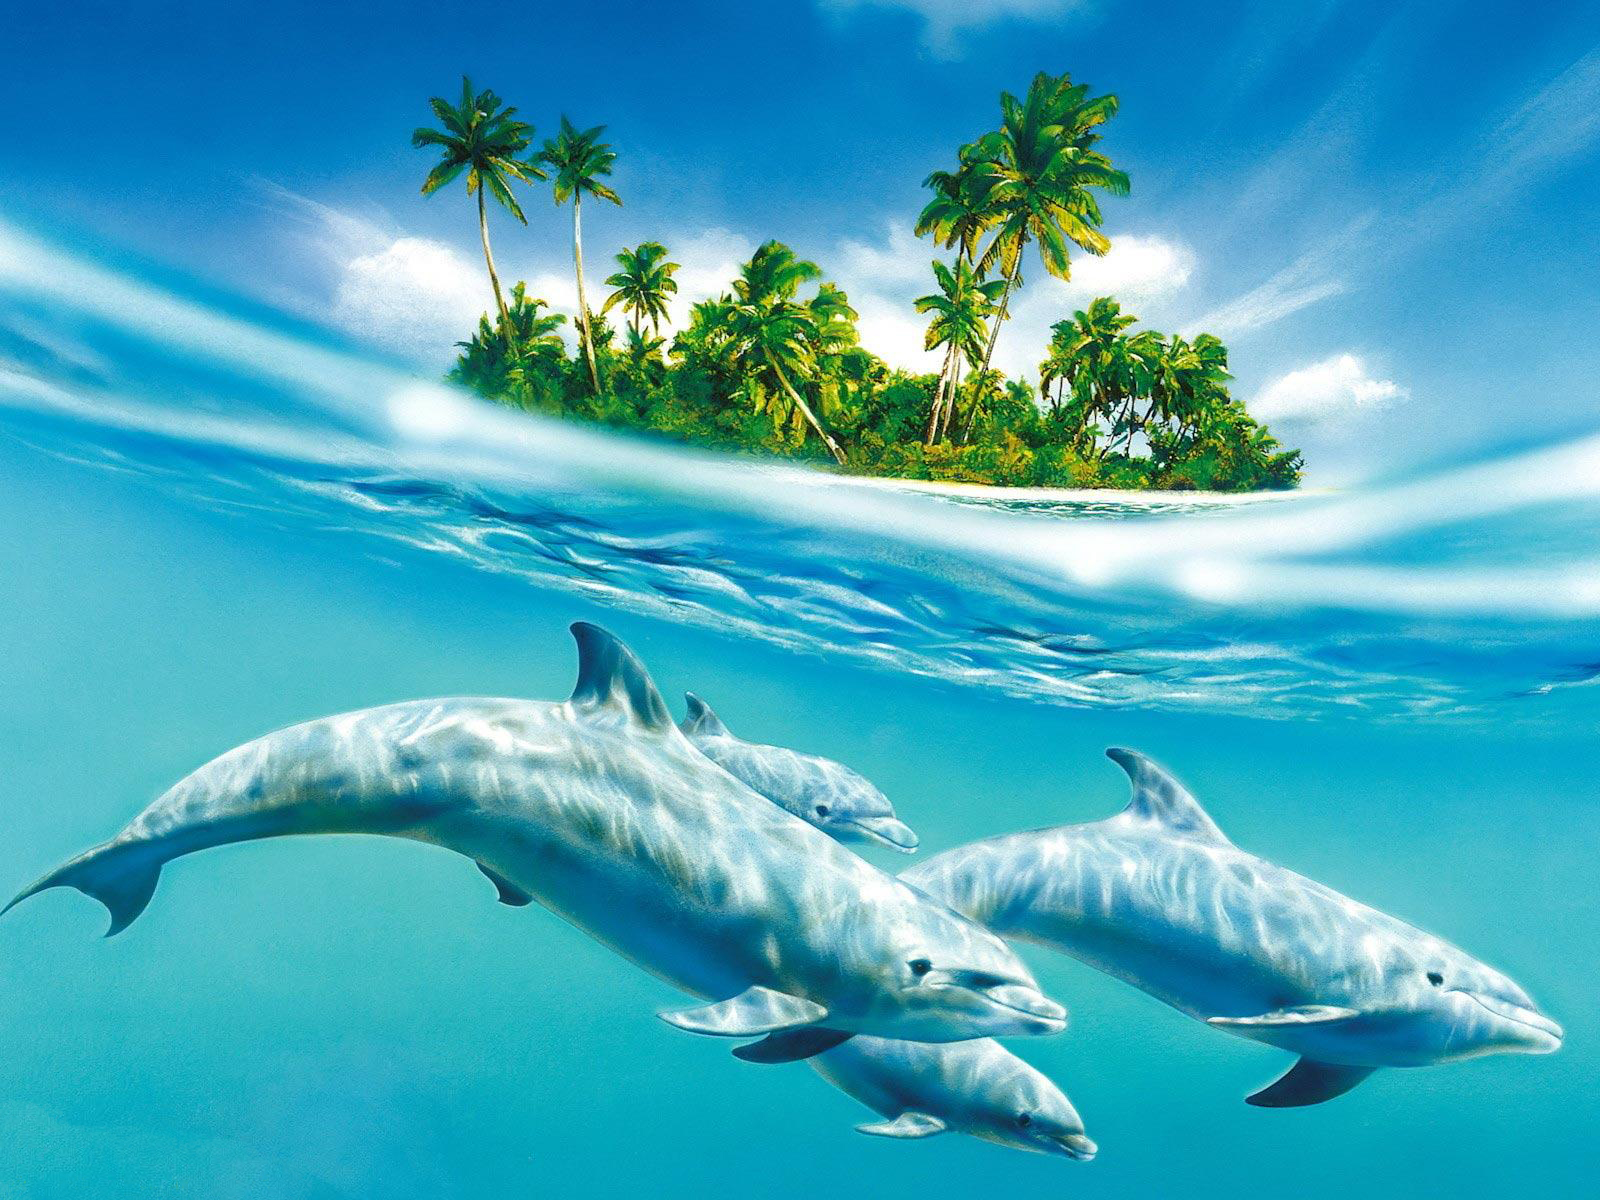 Hd dolphin wallpapers animal photo voltagebd Image collections